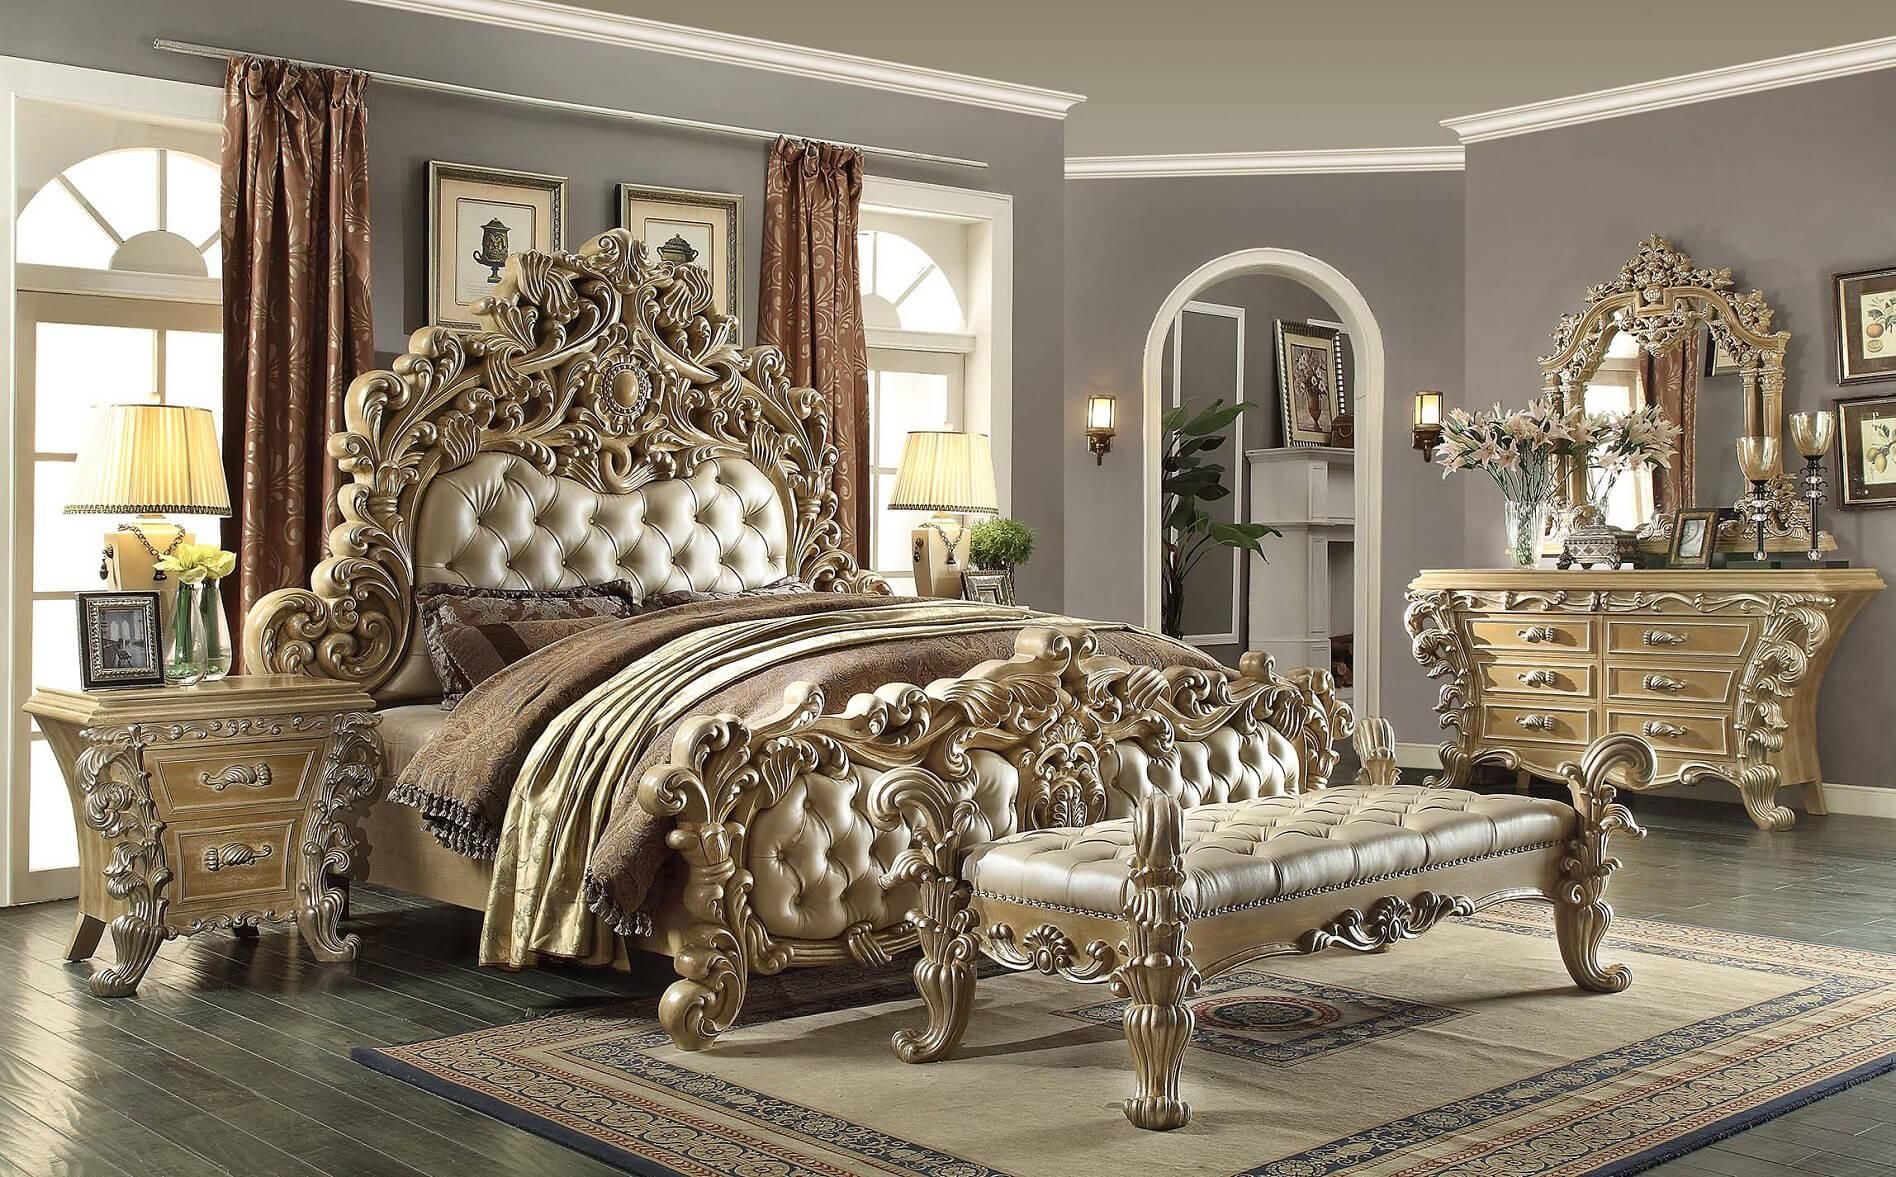 office in master bedroom 2 royal furniture bedroom sets 1896 x